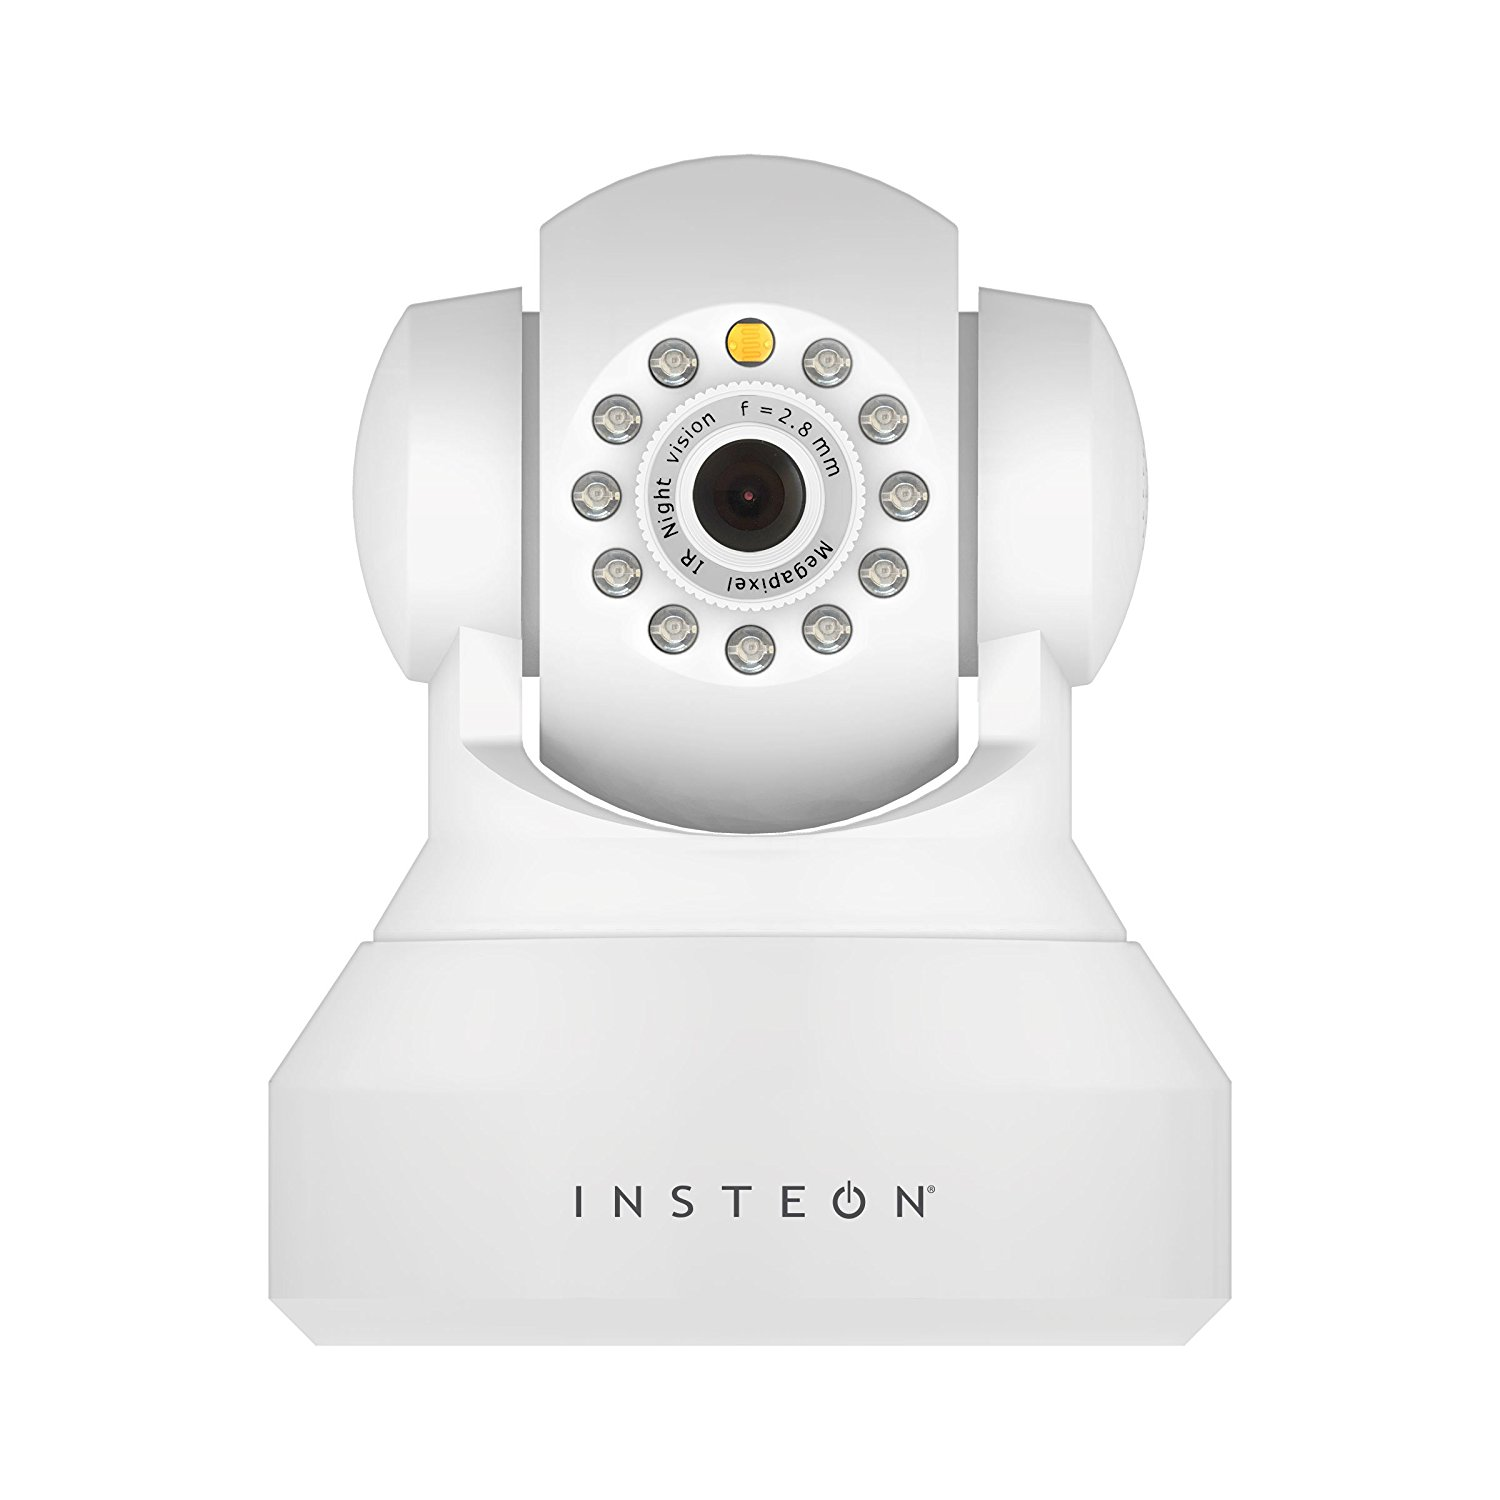 Insteon WIFi Cameras